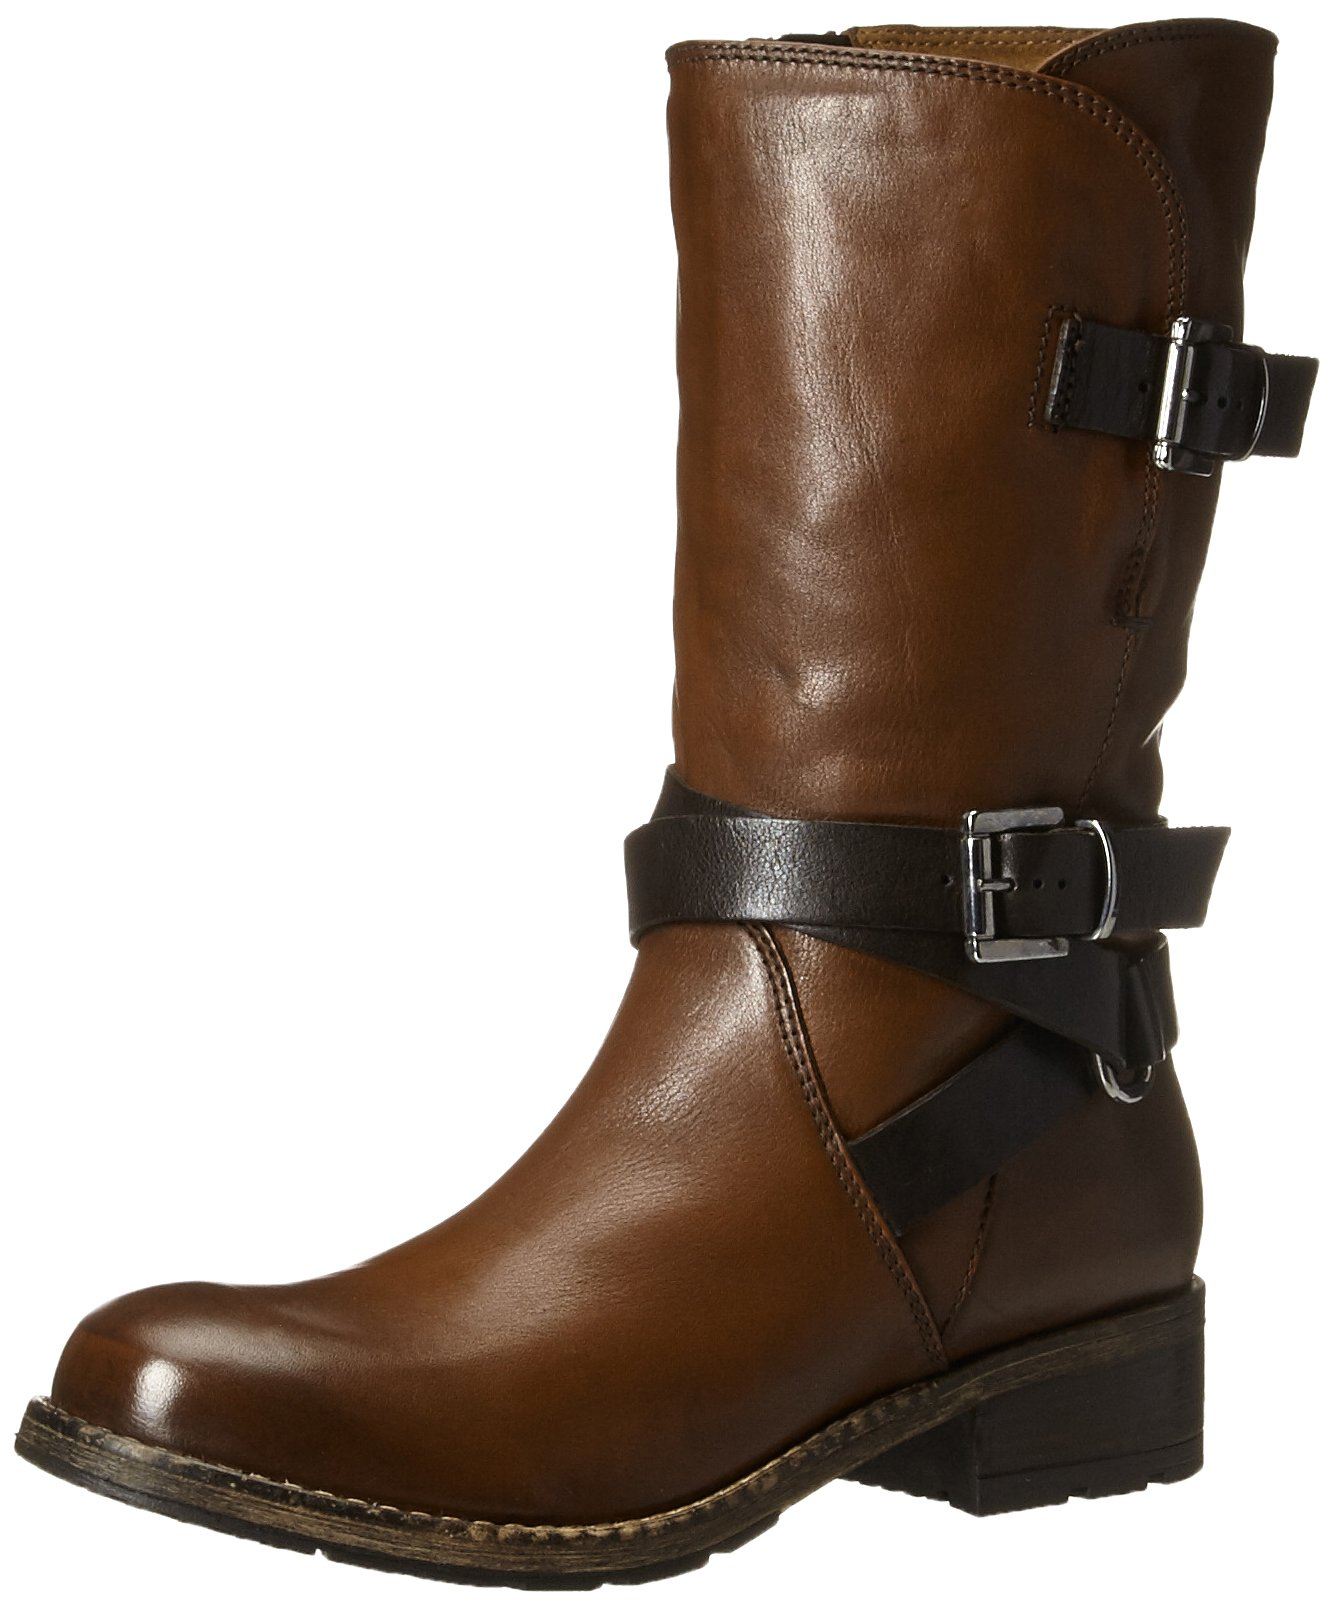 CLARKS Women's Volara Melody Motorcycle Boot, Rust Leather, 7.5 M US